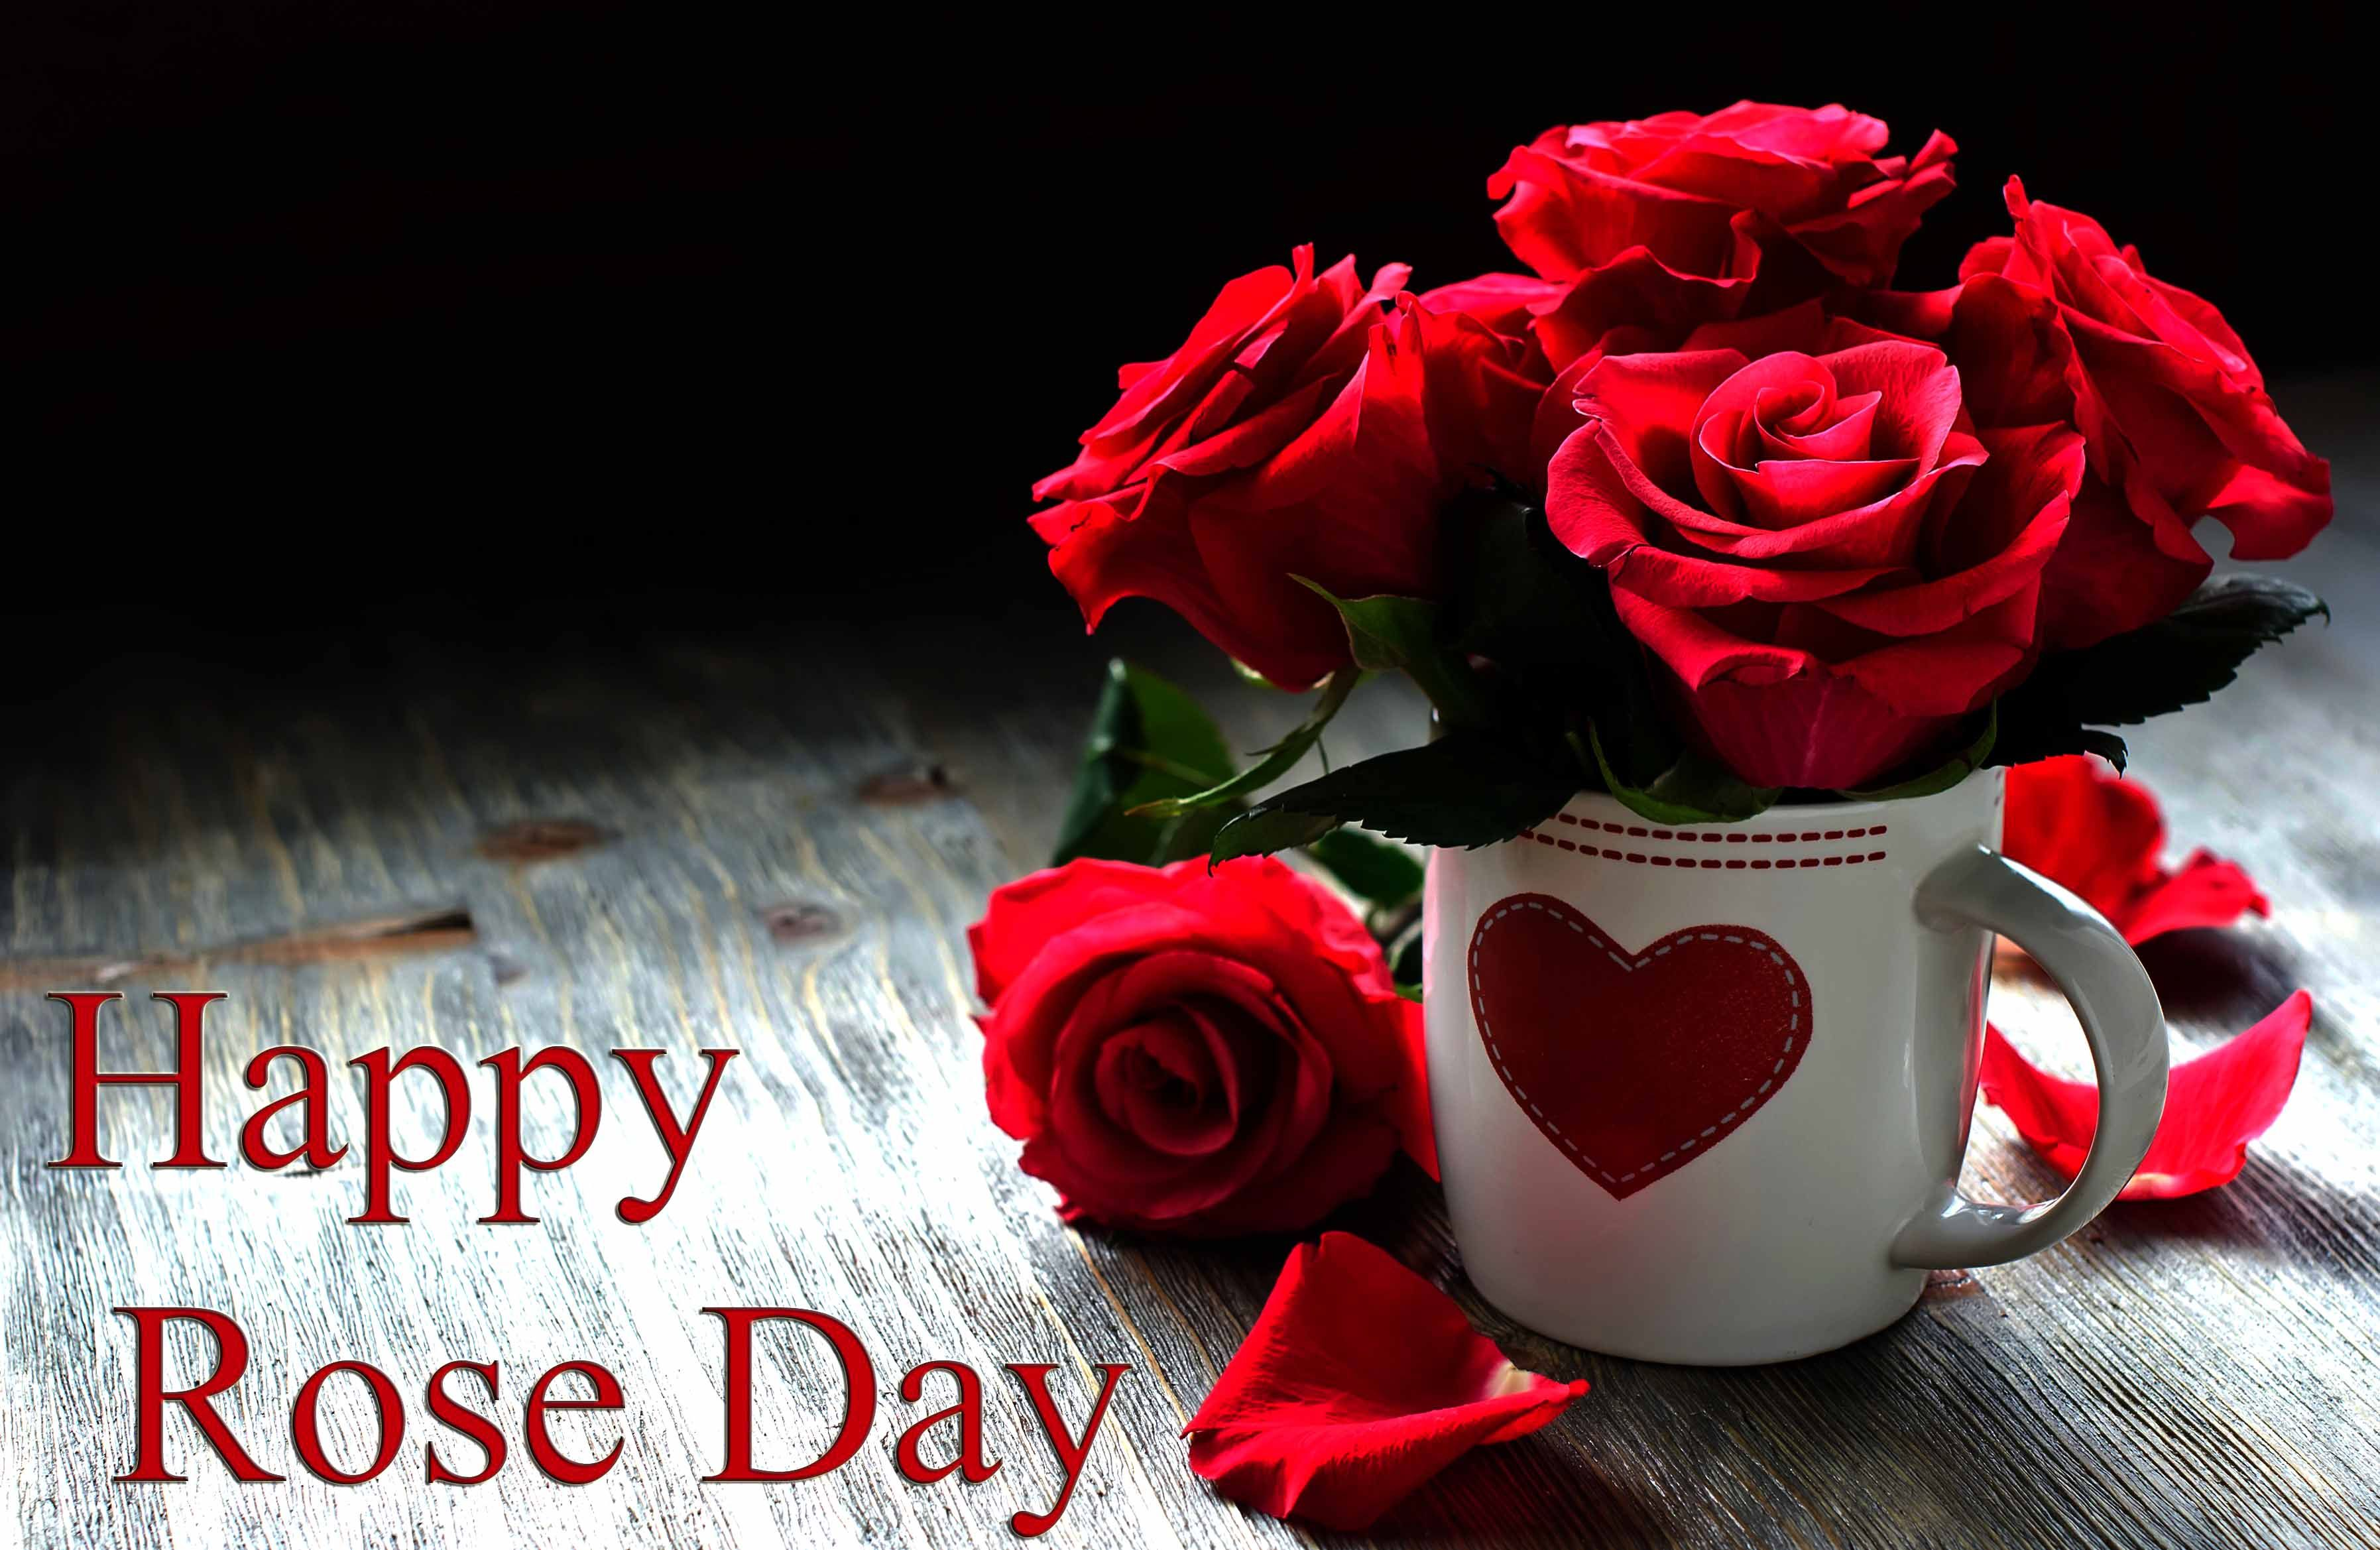 Rose Day Is The Day When Couples In Love Singles In Love Friends And Family All Exchan Rose Day Wallpaper Happy Valentines Day Card Happy Rose Day Wallpaper